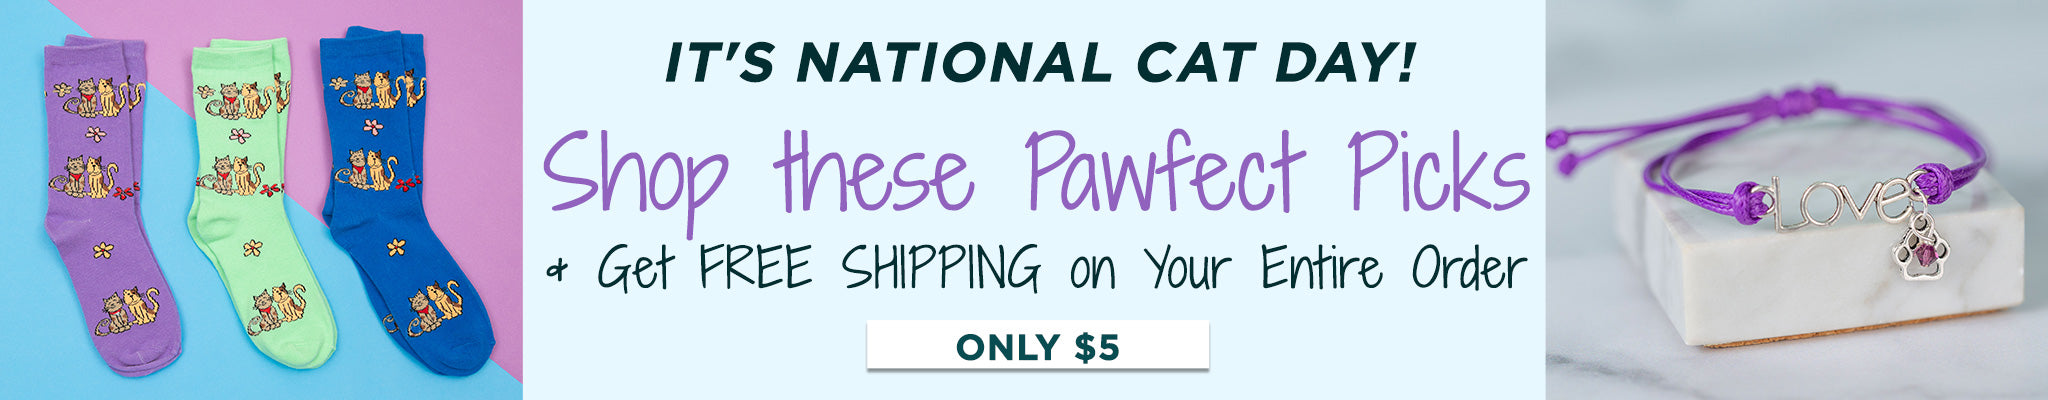 It's National Cat Day! Shop these Pawfect Picks & Get FREE Shipping on Your Entire Order | Only $5